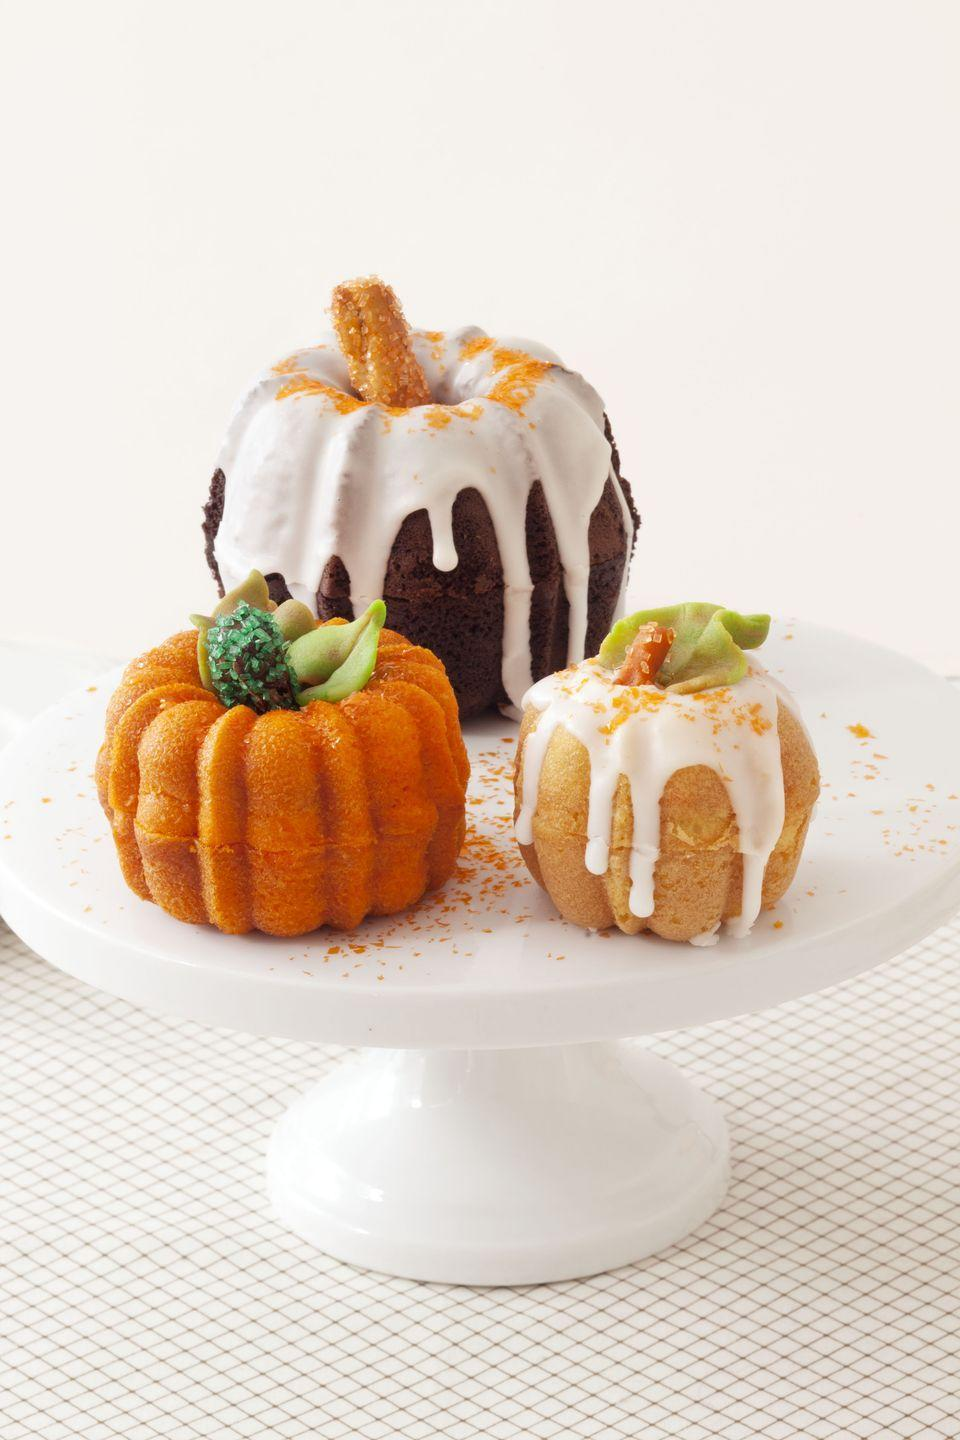 """<p>Snack on these sweet, miniature cakes while you wait for<em> <a href=""""https://www.amazon.com/Its-Great-Pumpkin-Charlie-Brown/dp/B015X7GM7E/?tag=syn-yahoo-20&ascsubtag=%5Bartid%7C10055.g.2700%5Bsrc%7Cyahoo-us"""" rel=""""nofollow noopener"""" target=""""_blank"""" data-ylk=""""slk:It's the Great Pumpkin, Charlie Brown"""" class=""""link rapid-noclick-resp"""">It's the Great Pumpkin, Charlie Brown</a></em> to start playing on TV. </p><p><a class=""""link rapid-noclick-resp"""" href=""""https://www.amazon.com/Nordic-Ware-Collection-Anniversary-Bundtlette/dp/B004RB4SII/?tag=syn-yahoo-20&ascsubtag=%5Bartid%7C10055.g.2700%5Bsrc%7Cyahoo-us"""" rel=""""nofollow noopener"""" target=""""_blank"""" data-ylk=""""slk:SHOP PUMPKIN CAKE MOLDS"""">SHOP PUMPKIN CAKE MOLDS</a></p><p><em><a href=""""https://www.goodhousekeeping.com/food-recipes/a15461/pumpkin-patch-cakes-recipe-ghk1013/"""" rel=""""nofollow noopener"""" target=""""_blank"""" data-ylk=""""slk:Get the recipe for Pumpkin Patch Cakes »"""" class=""""link rapid-noclick-resp"""">Get the recipe for Pumpkin Patch Cakes »</a></em></p>"""